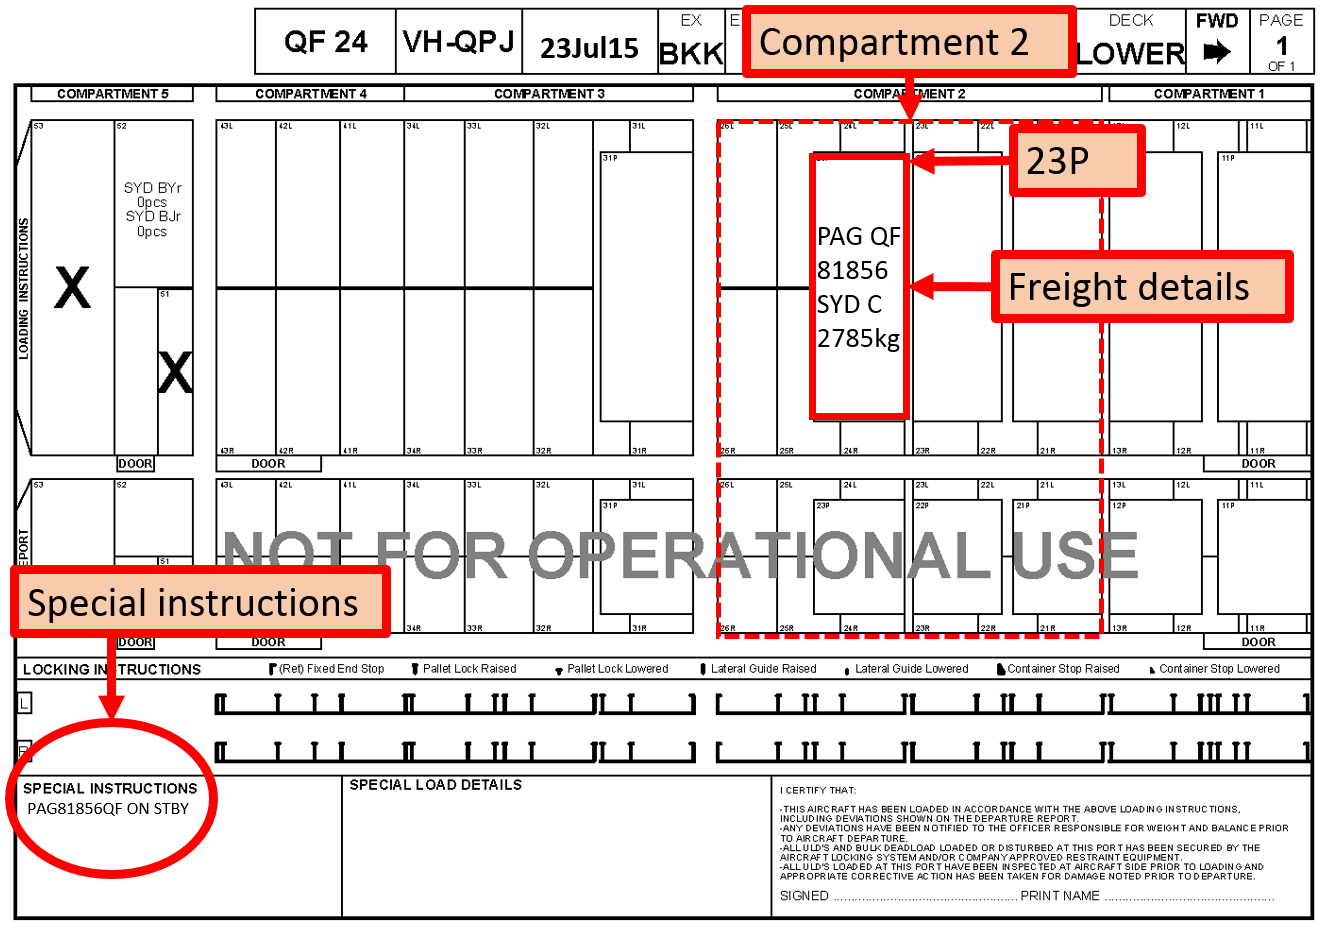 Figure 1: Load instruction report showing freight positions and special instructions